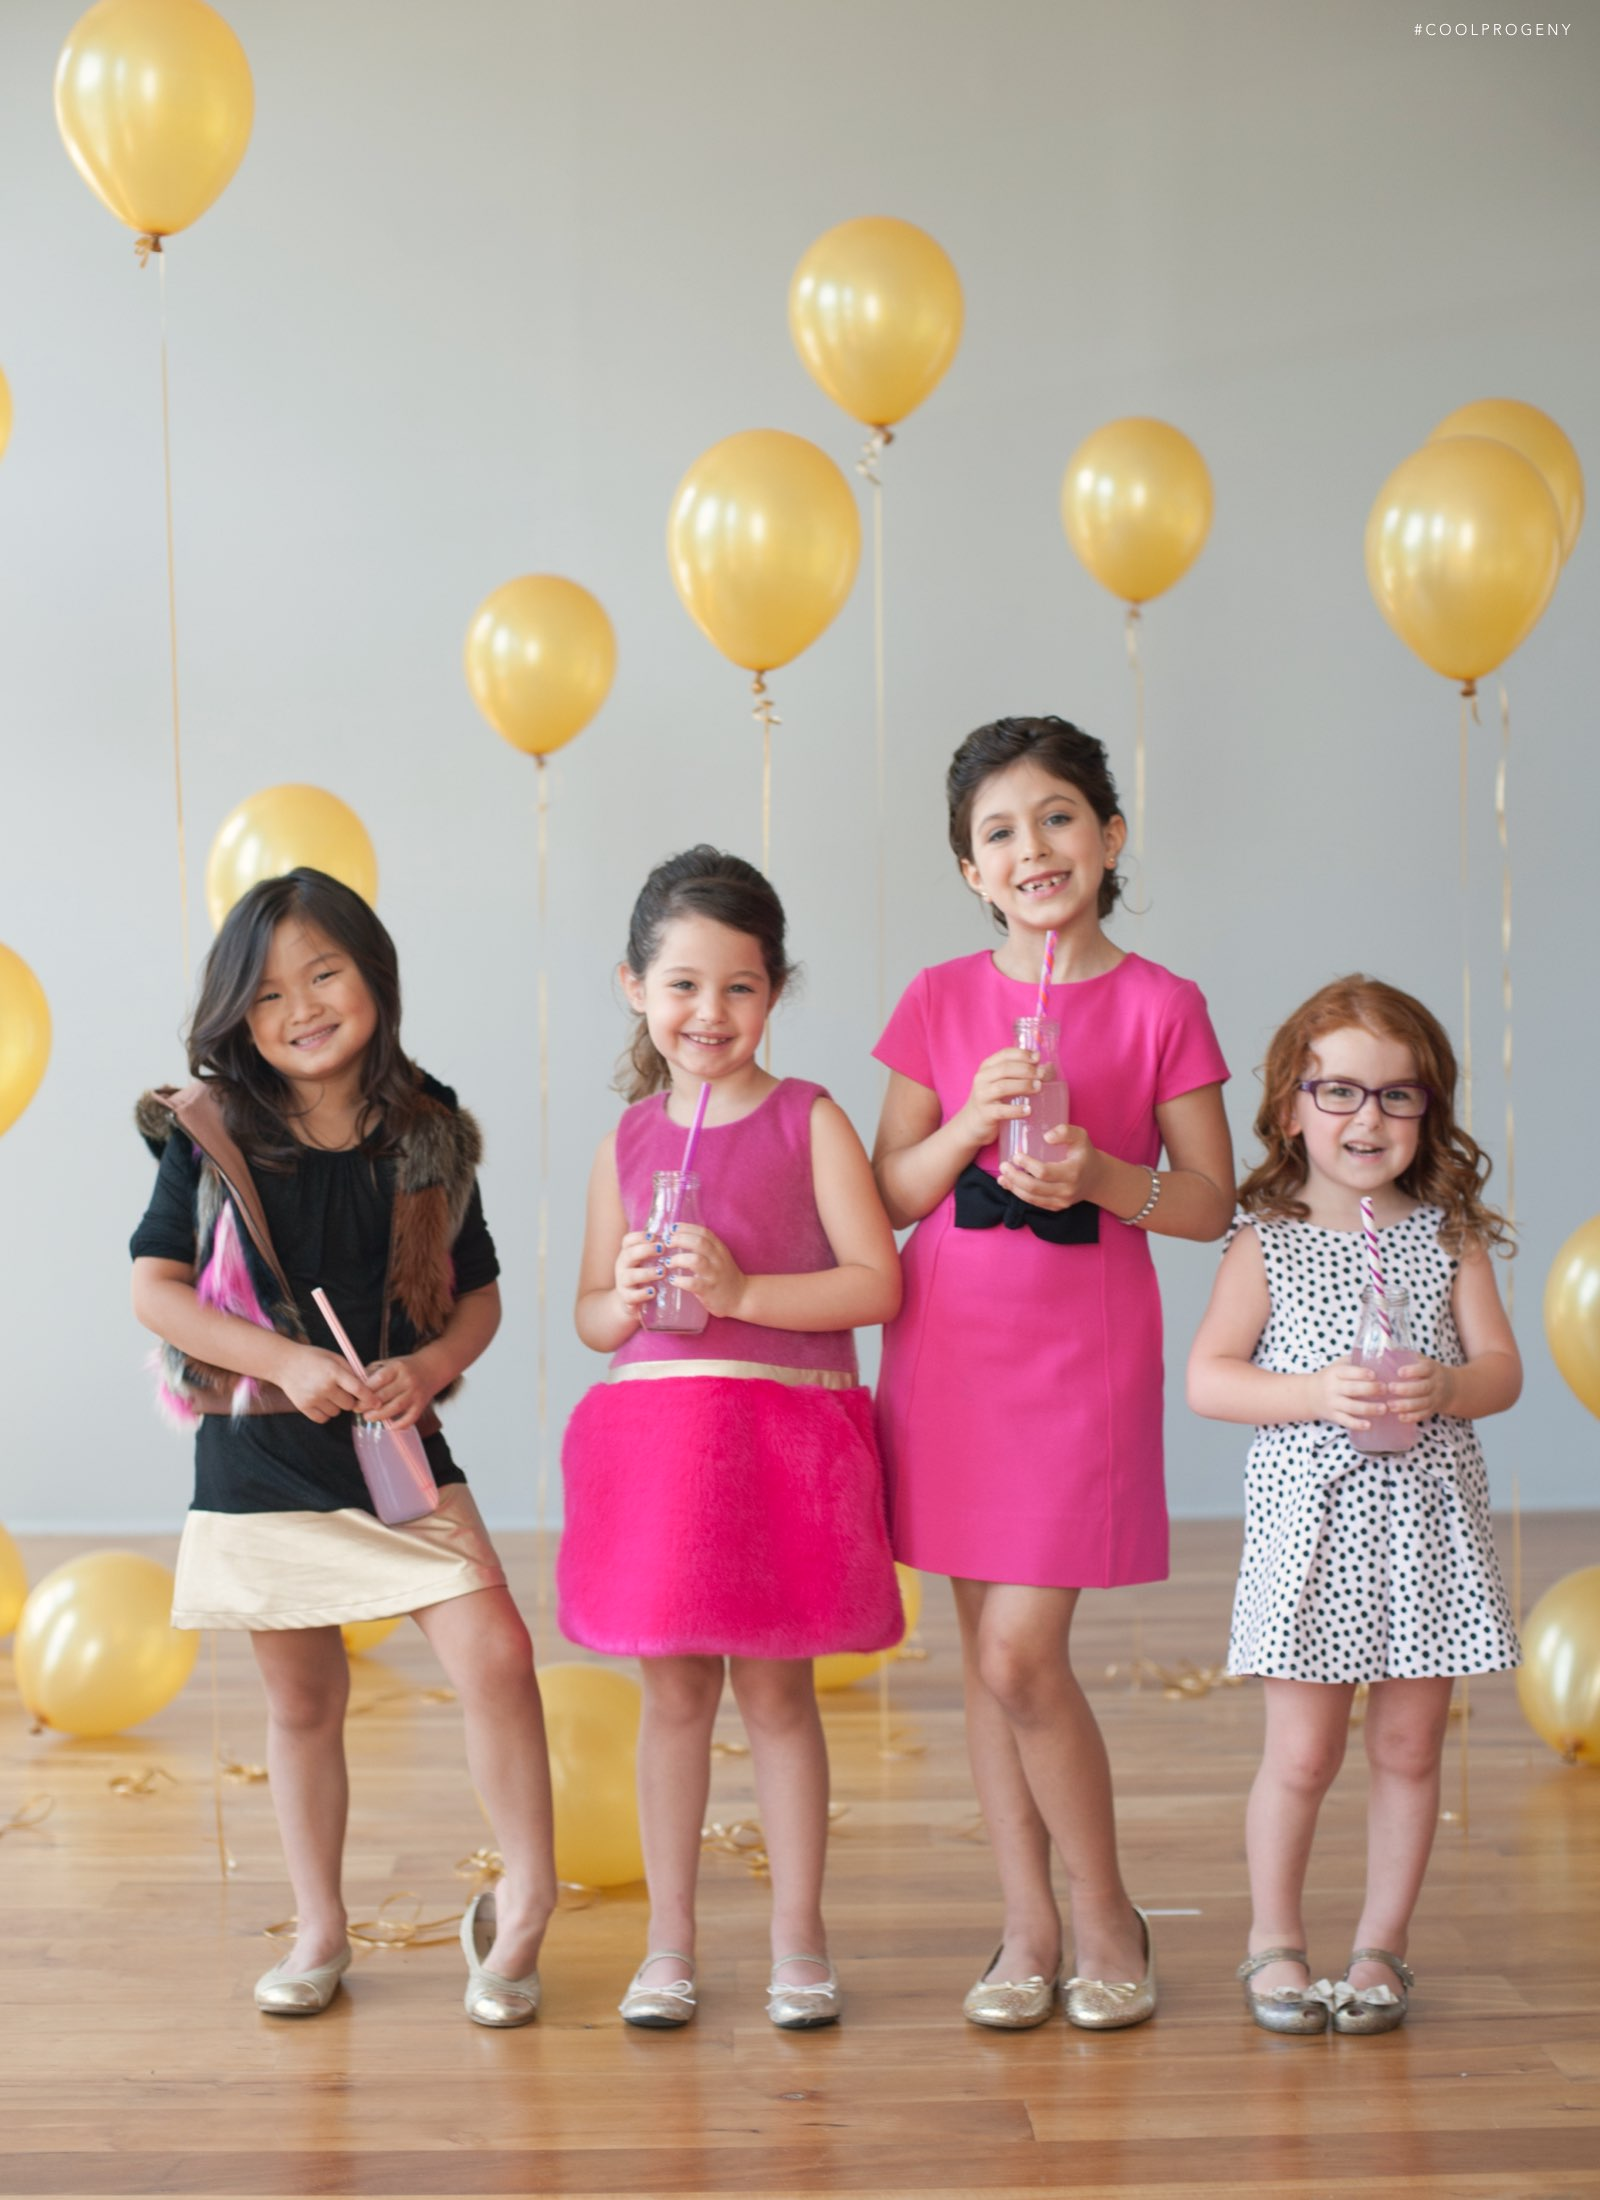 Kid-Friendly New Year's Noon Party - (cool) progeny